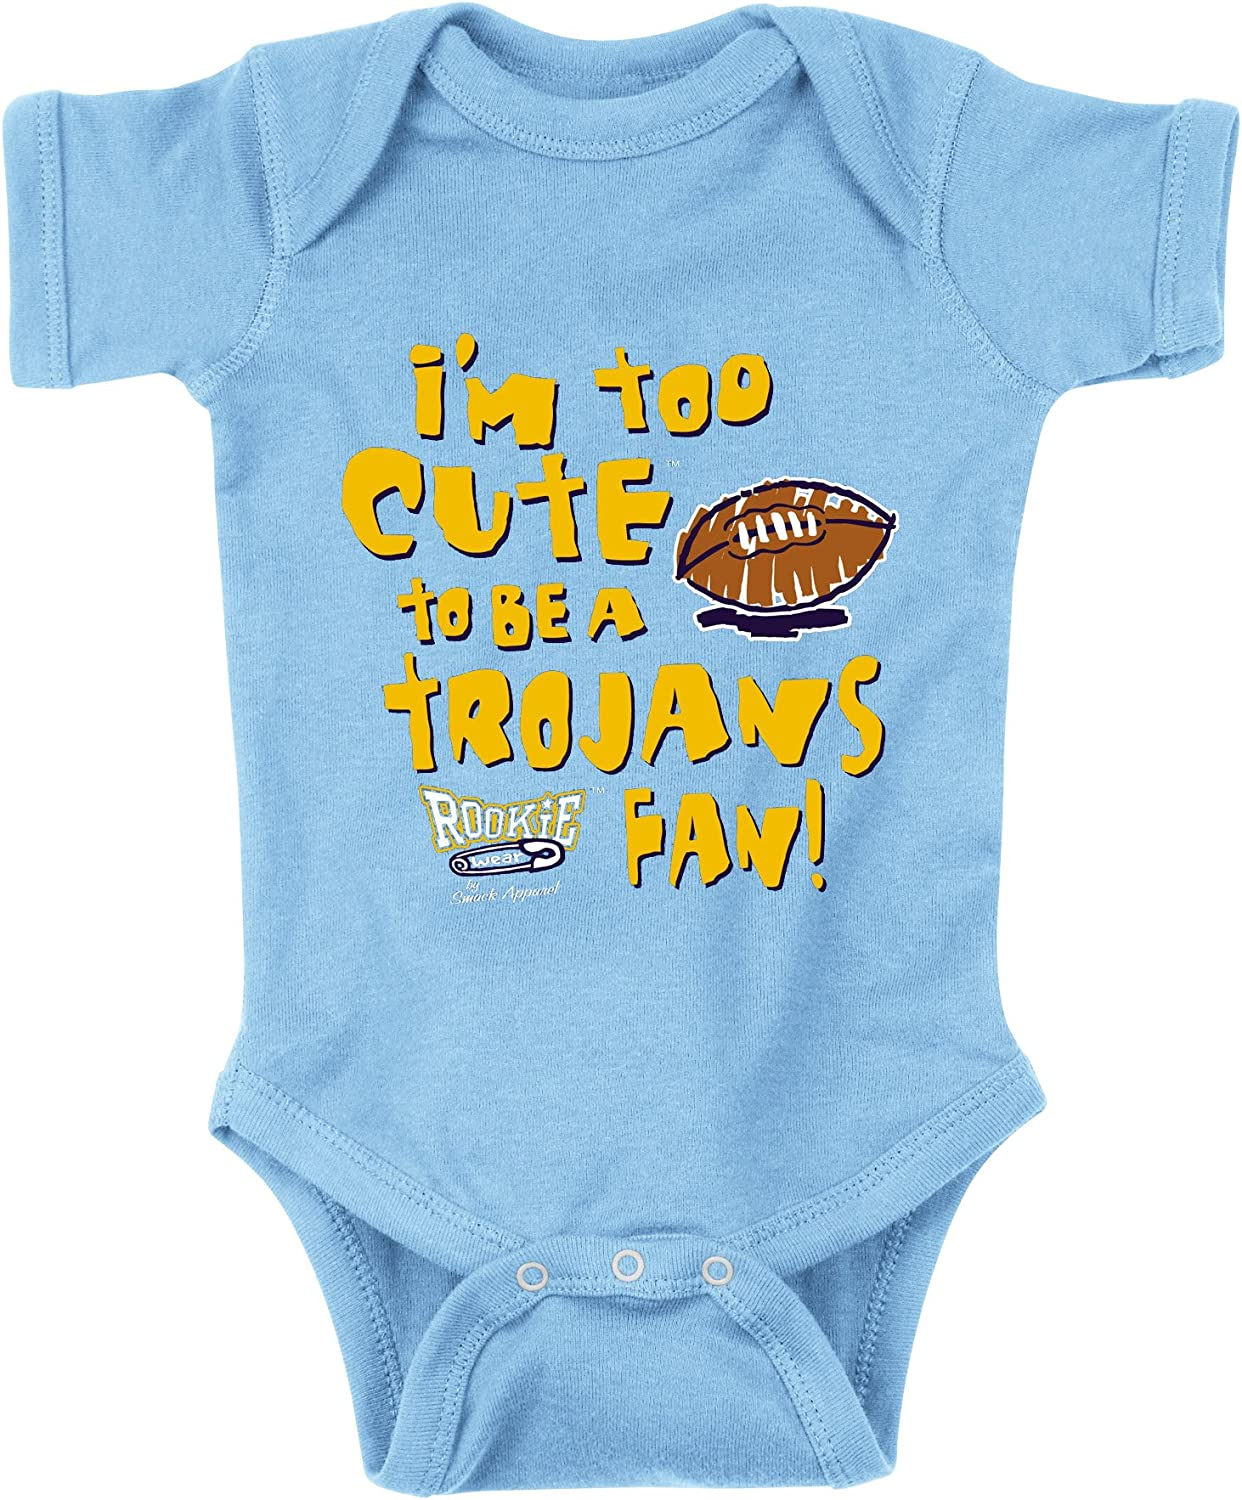 NB-18M Smack Apparel UCLA Bruins Fans Too Cute to Be A Trojans Fan Onesie 2T-4T or Toddler Tee